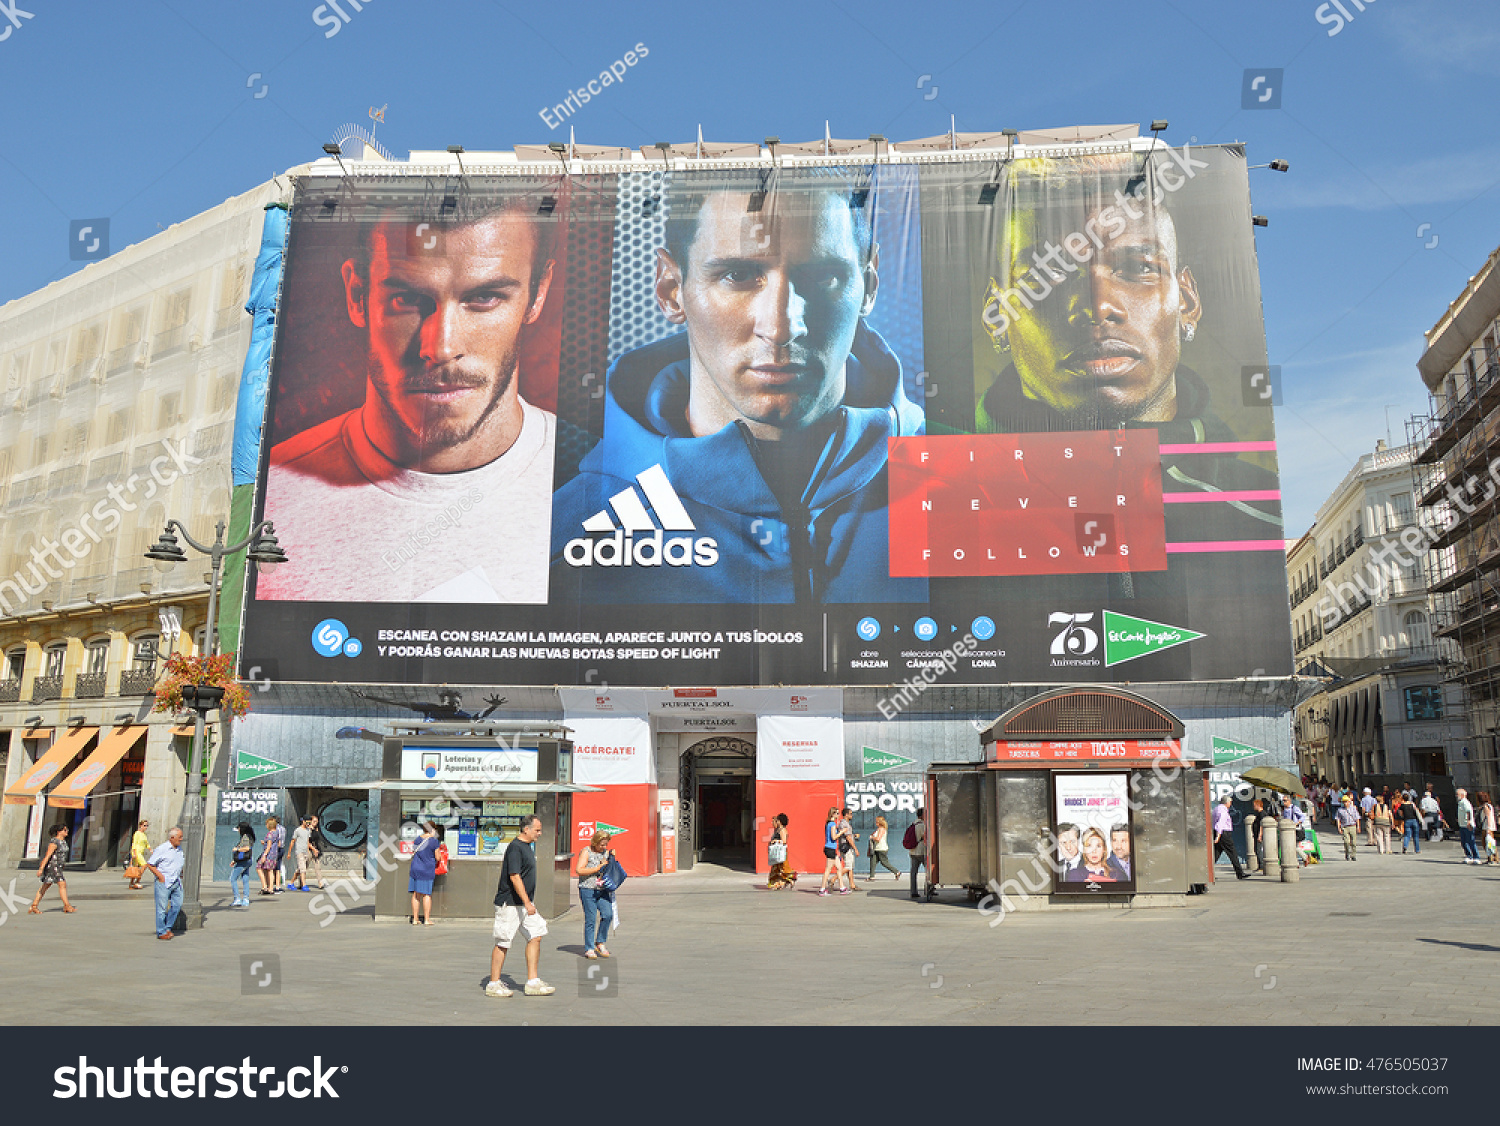 punto final Maestro Leia  Madrid Spain August 30 Adidas Spot Stock Photo (Edit Now) 476505037